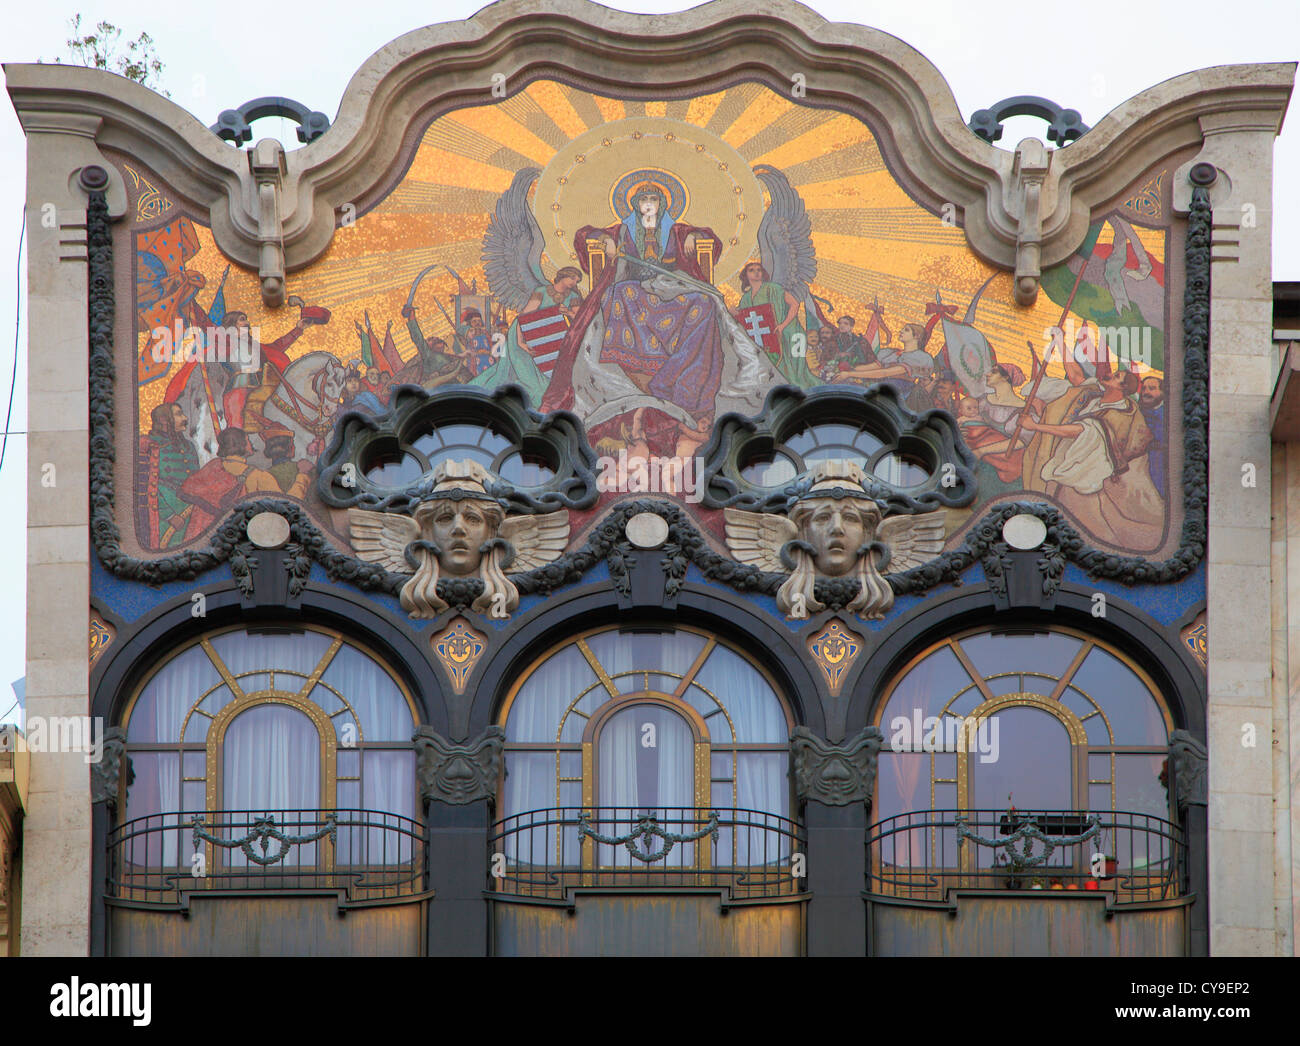 Hungary budapest art nouveau architecture detail stock for Architecture art